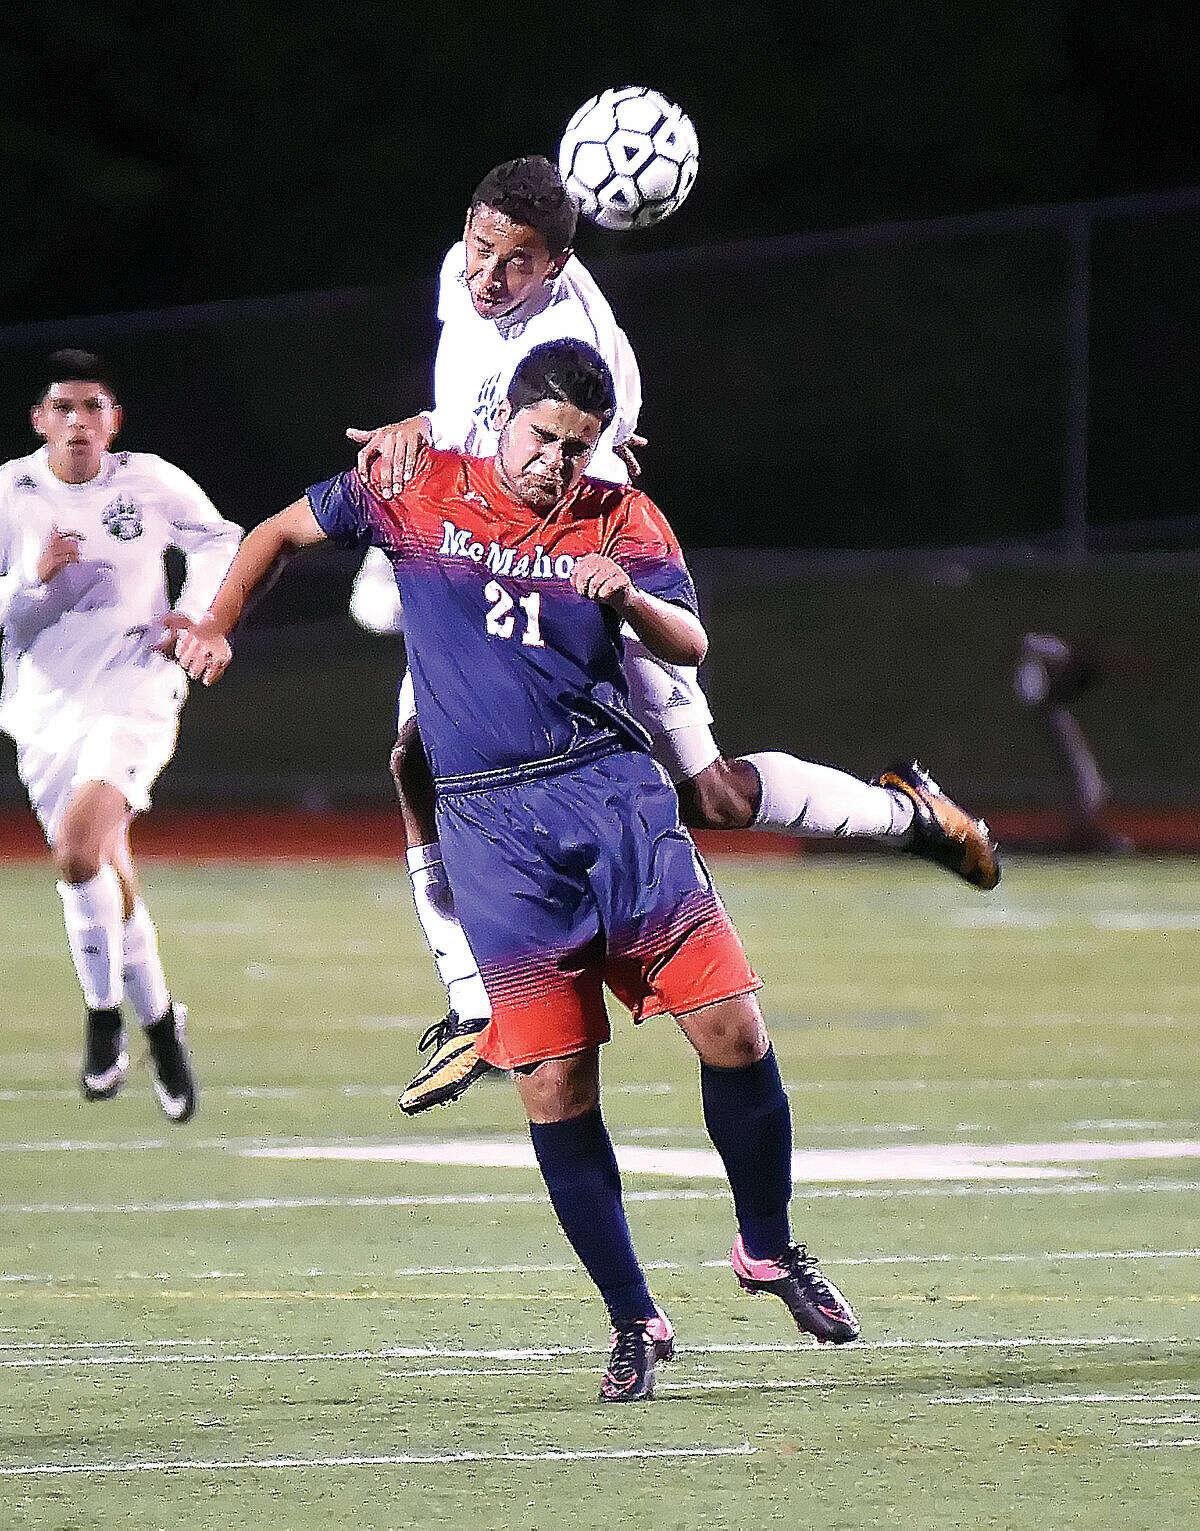 Hour photo/John Nash - Norwalk's Sebastian Echeverri, rear, heads the ball before McMahon's Abdullah Mawla can play it during Thursday's FCIAC boys soccer game at Testa Field in Norwalk. The two teams battled to a 1-1 tie.